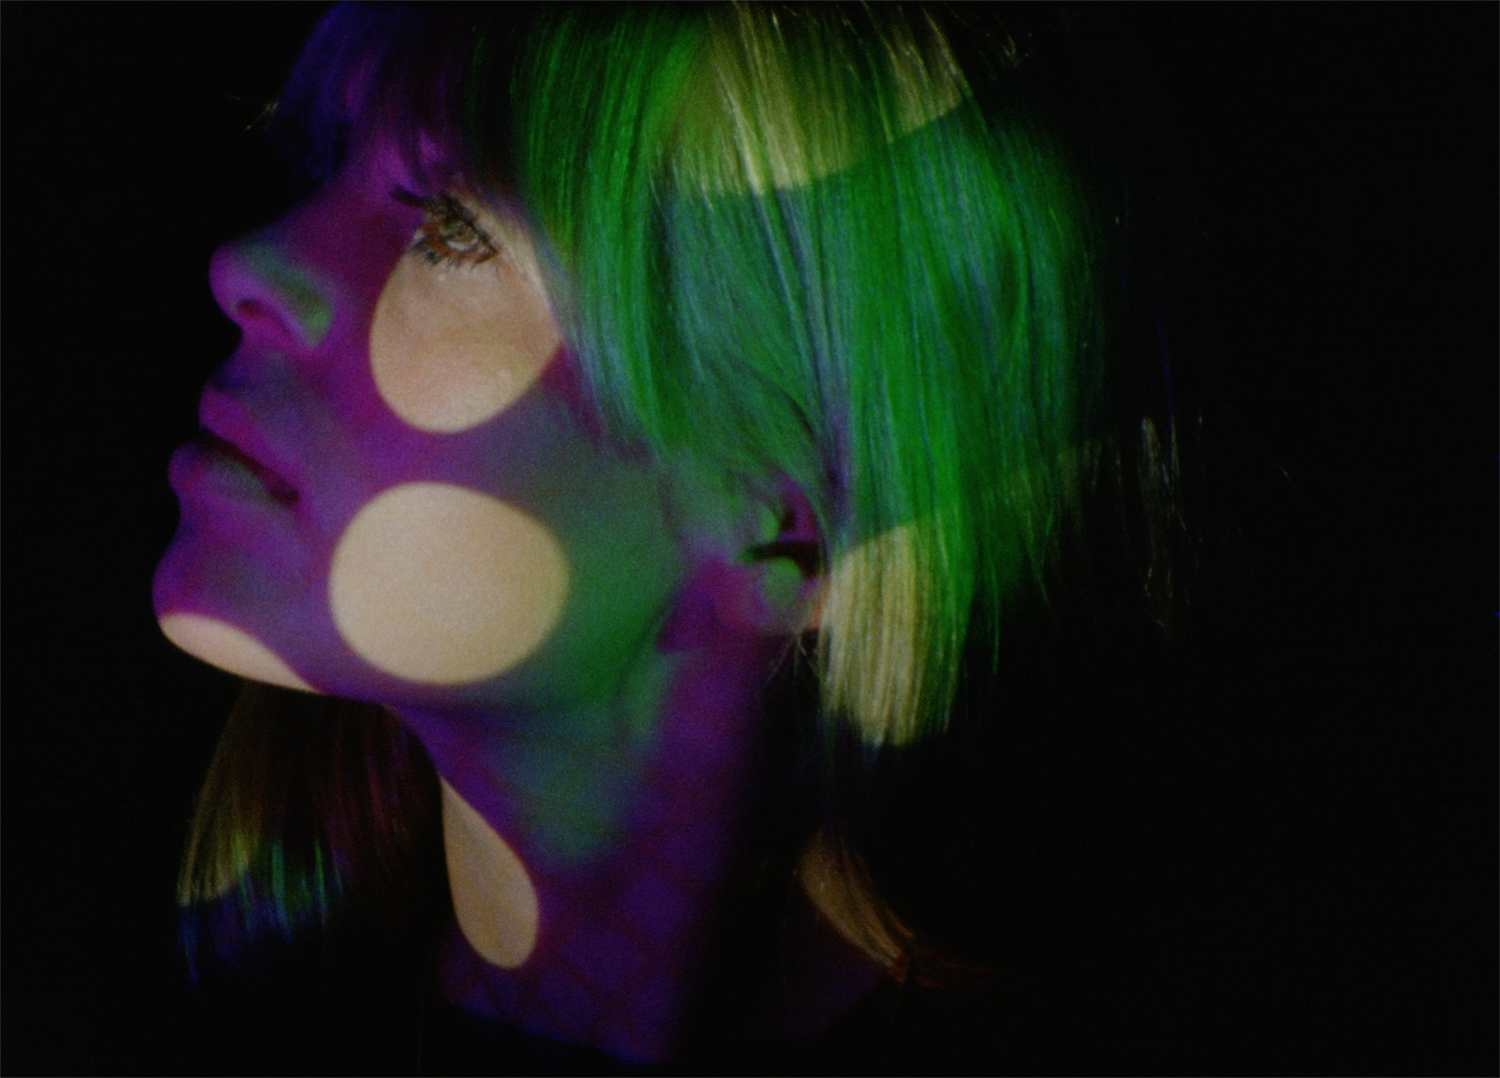 """Andy Warhol, """"Nico"""" / """"Nico Crying"""", 1966. Pictured: Nico. [MOM 45926 frame-036879]. ©2018 The Andy Warhol Museum, Pittsburgh, PA, a museum of Carnegie Institute. All rights reserved."""